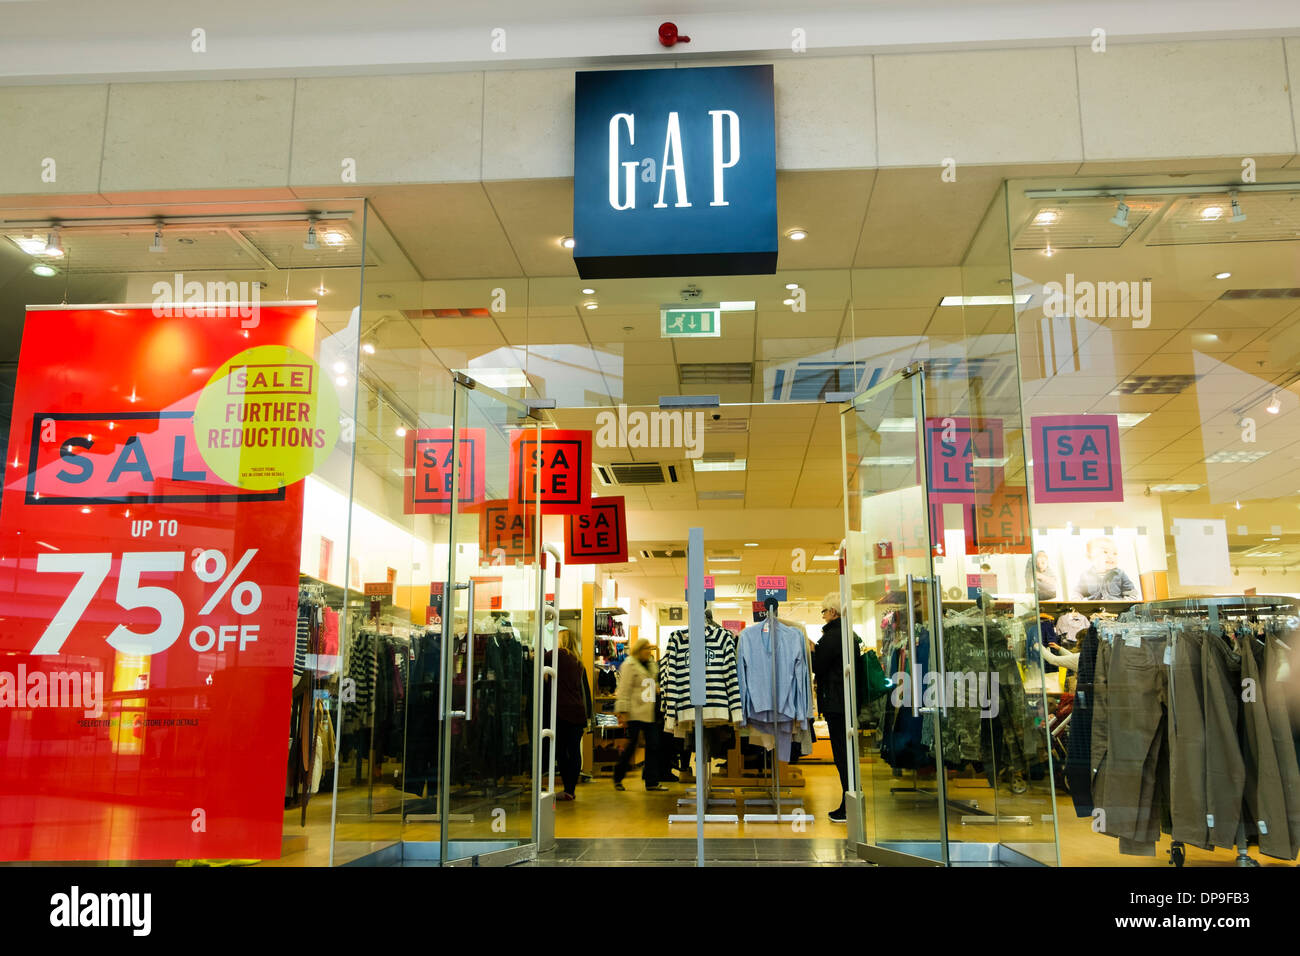 GAP store at Merry Hill, UK. - Stock Image